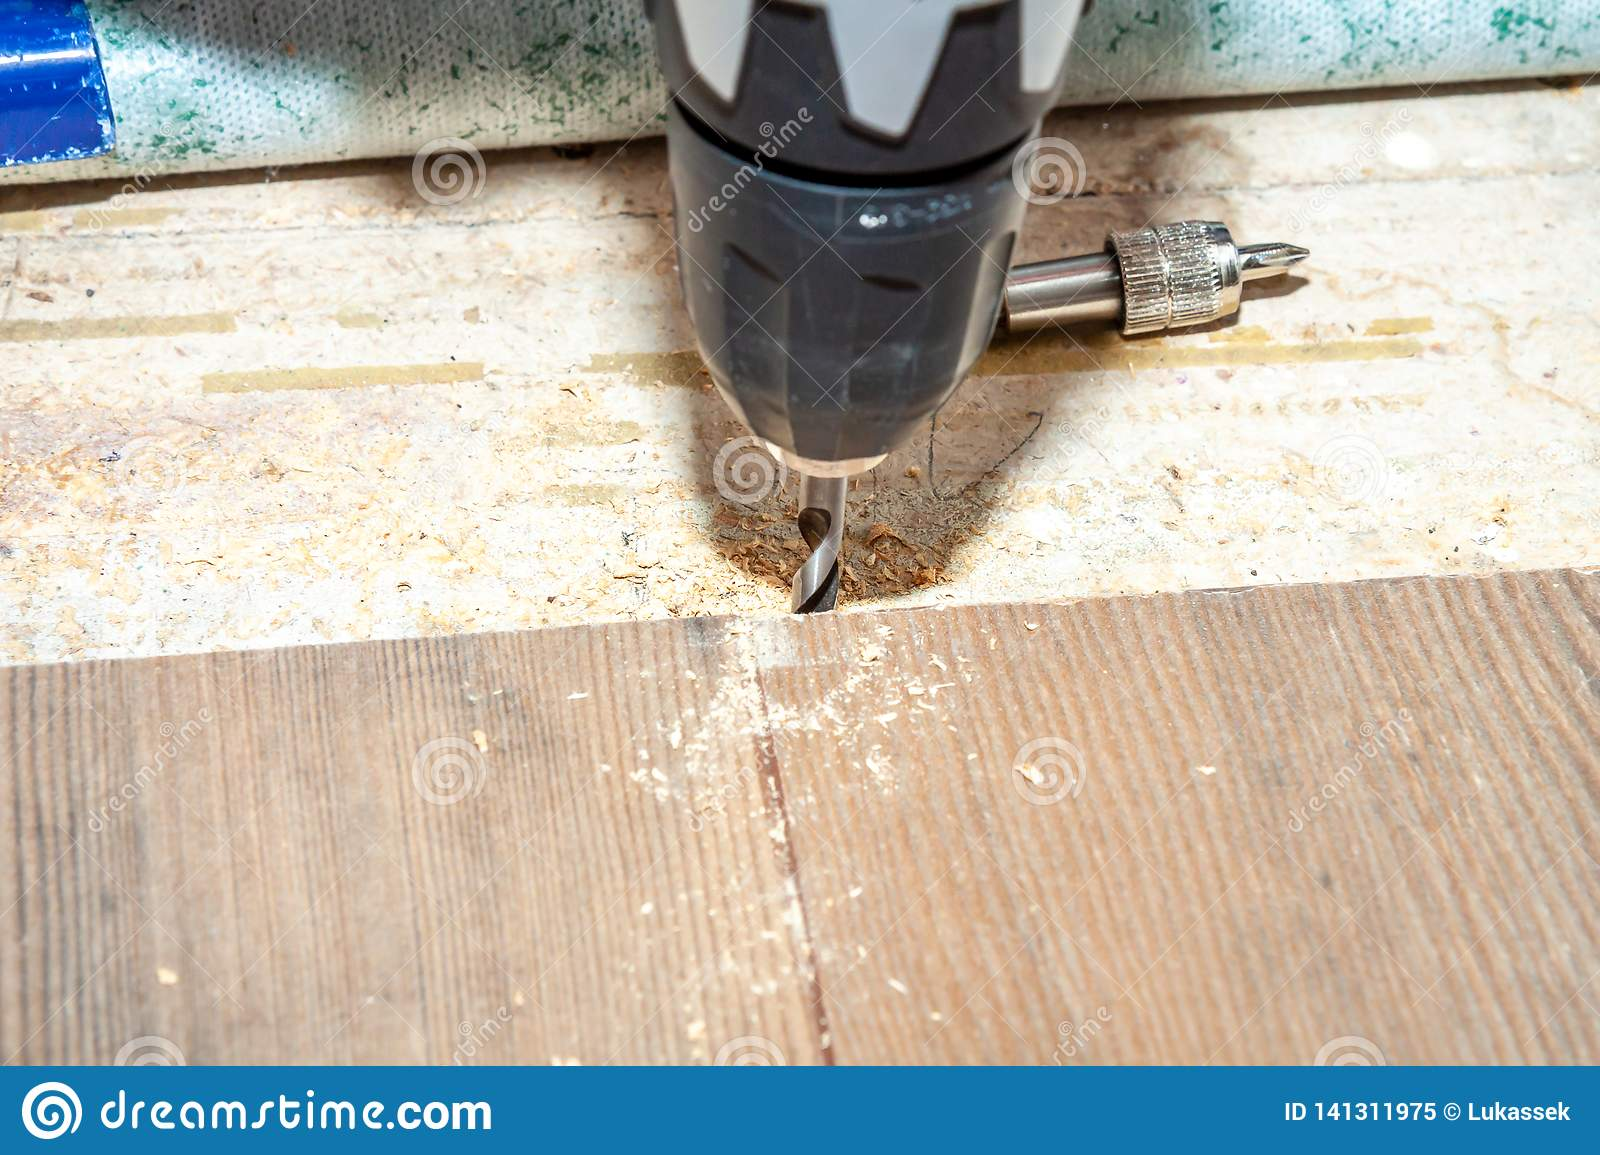 Man using drill machine while installing new wooden laminate flooring at home.